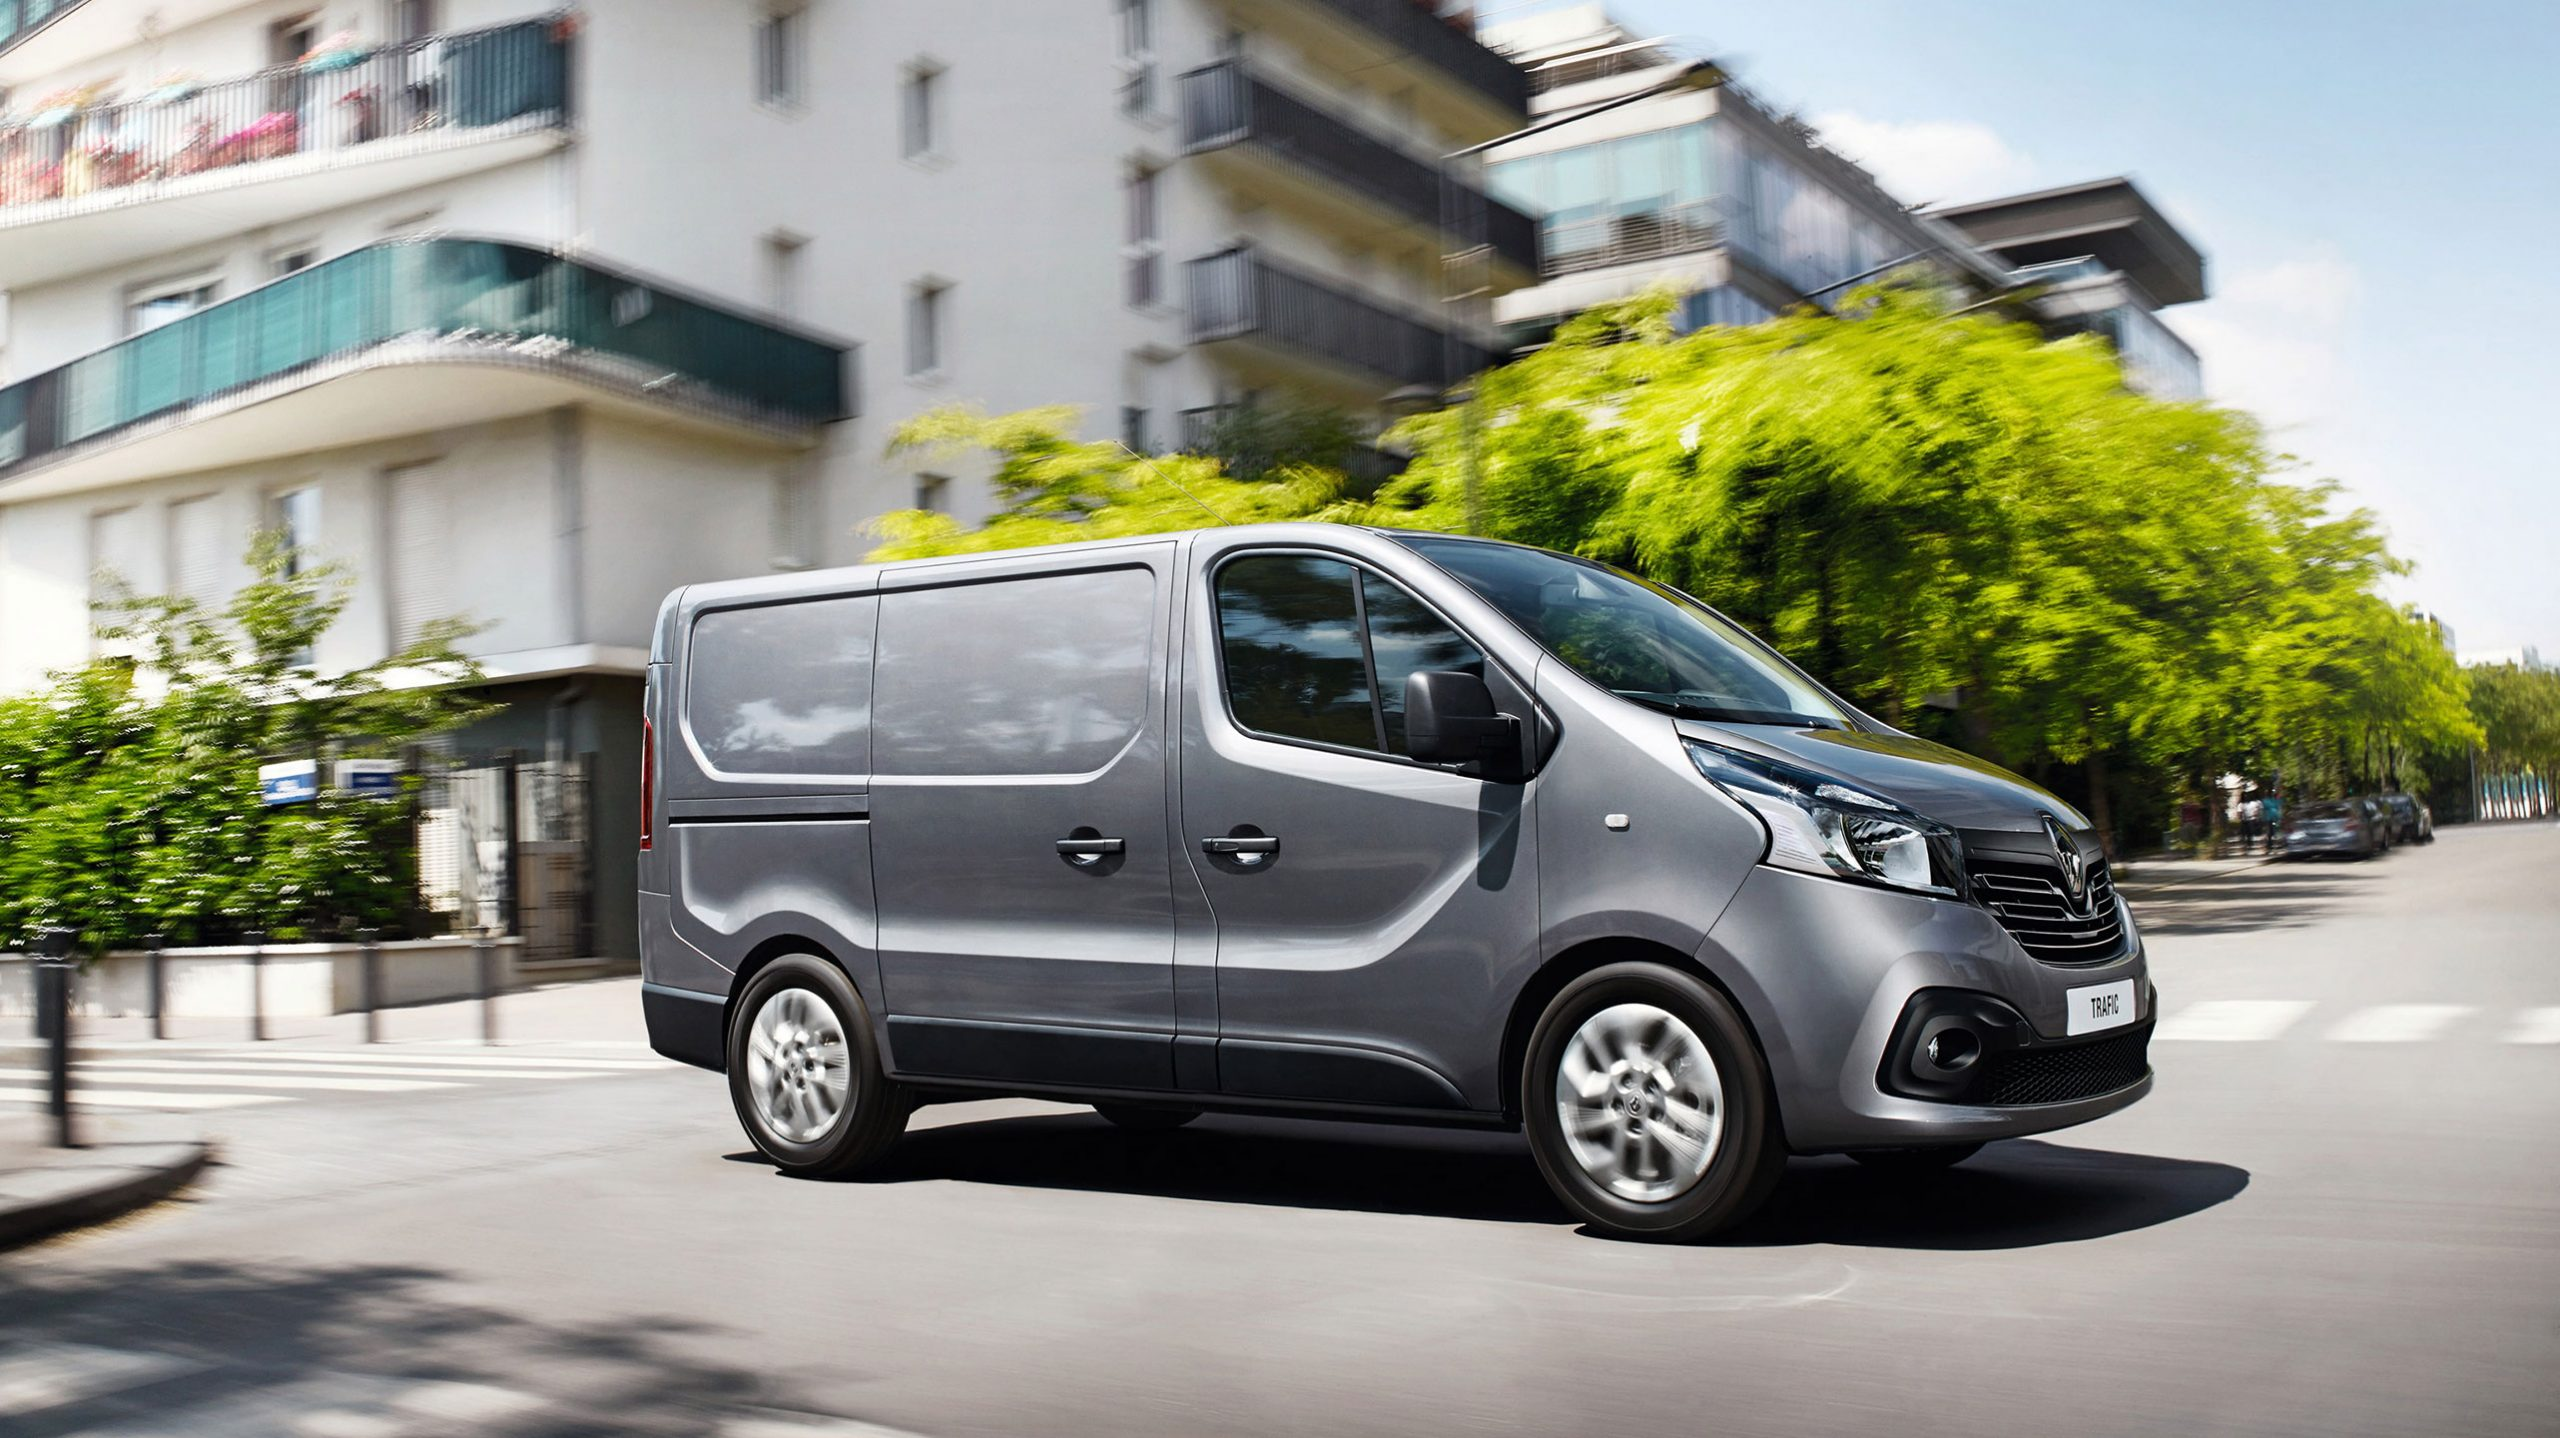 Nuovo Renault Trafic | Veicoli commerciali Renault | Messa t.